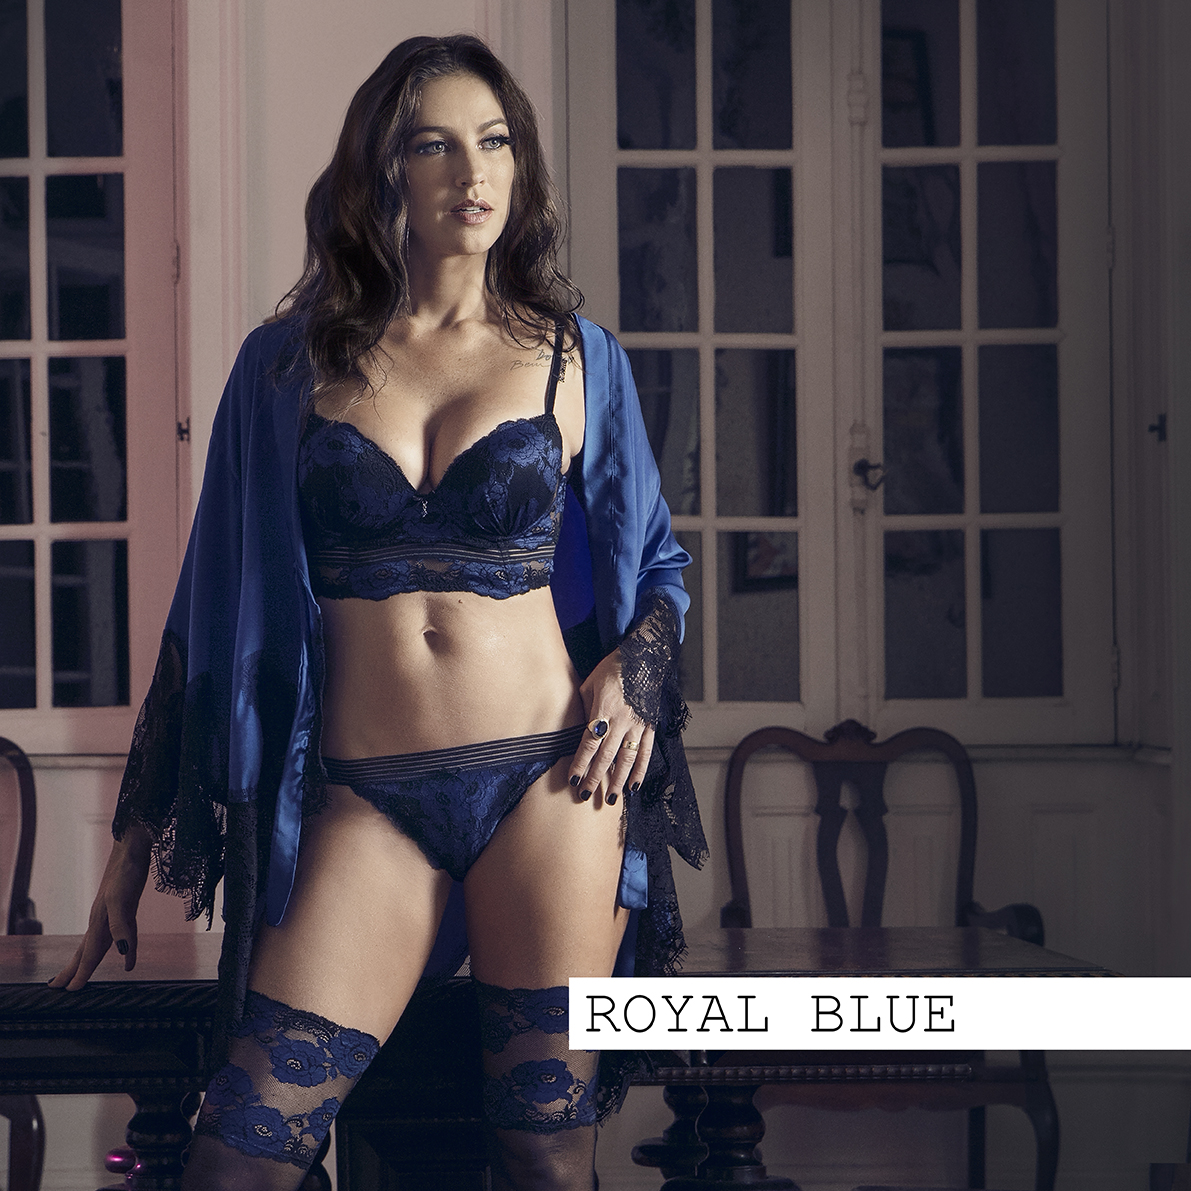 20170530_luana_royal_blue_v2